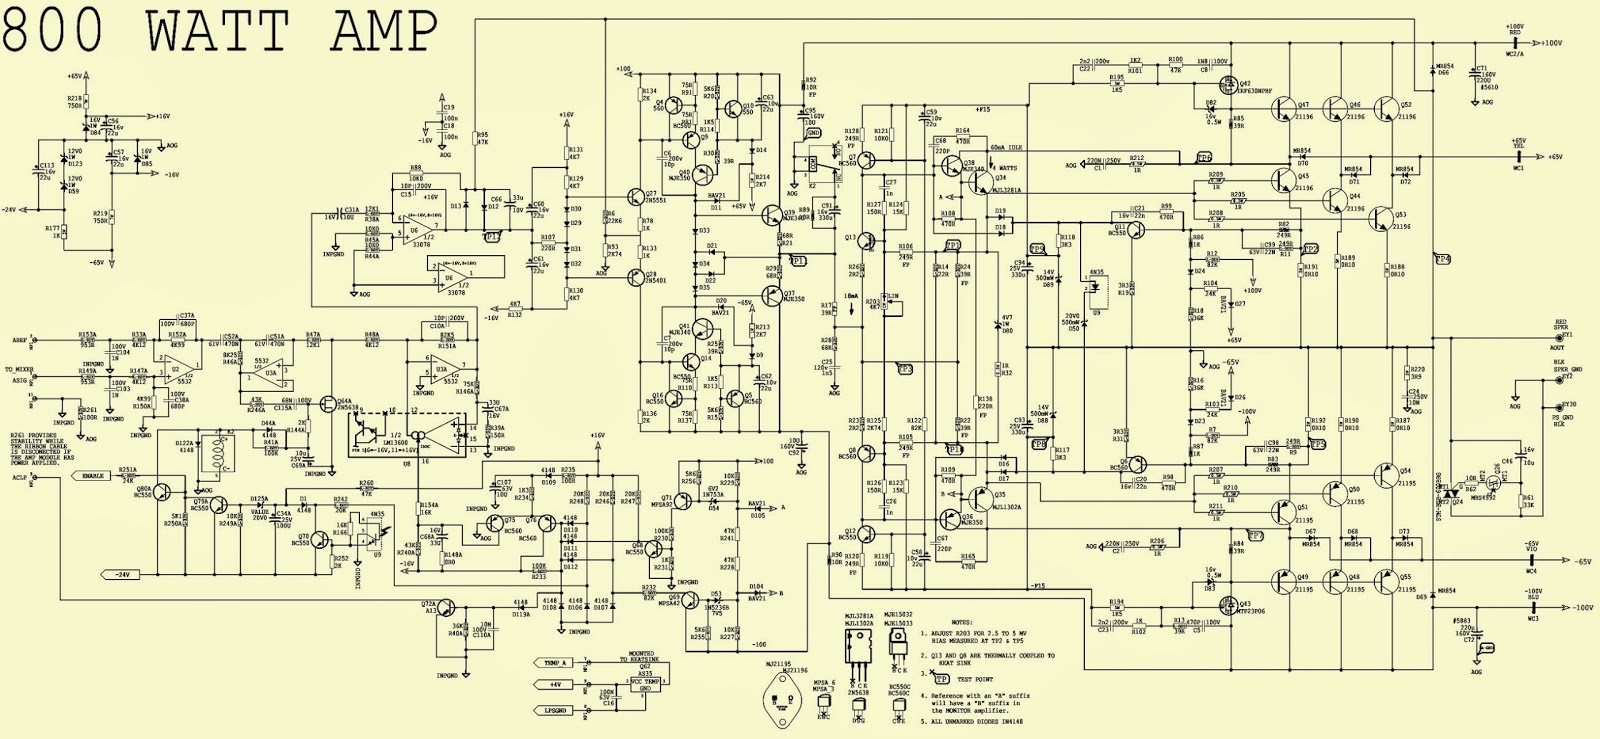 800watts Amplifier Circuit Diagram - 800 Watts Amp - 800watts Amplifier  Circuit Diagram